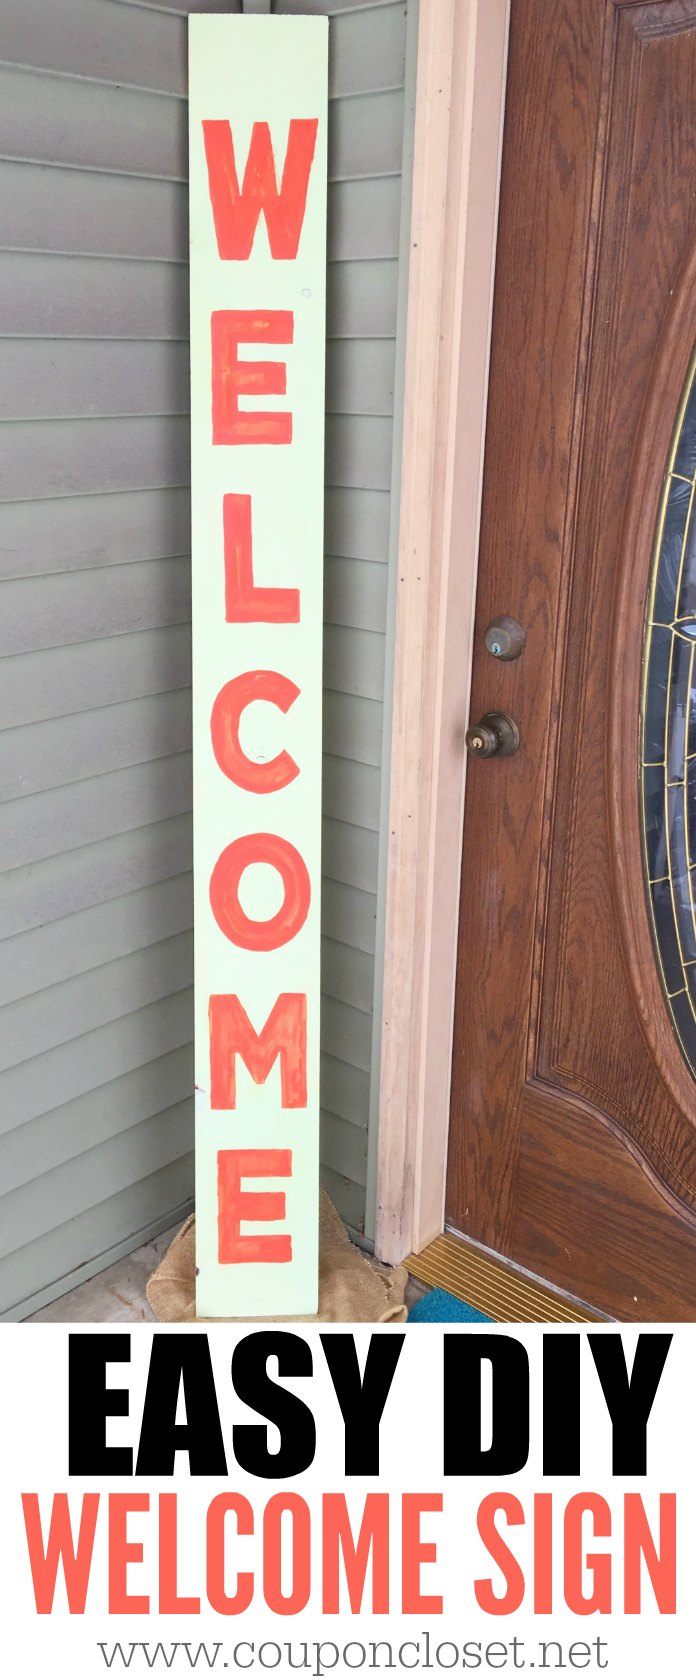 DIY WELCOME SIGN - Easy to make welcome banner. See our front porch welcome home banner. Painting words on wood is easy with this technique.